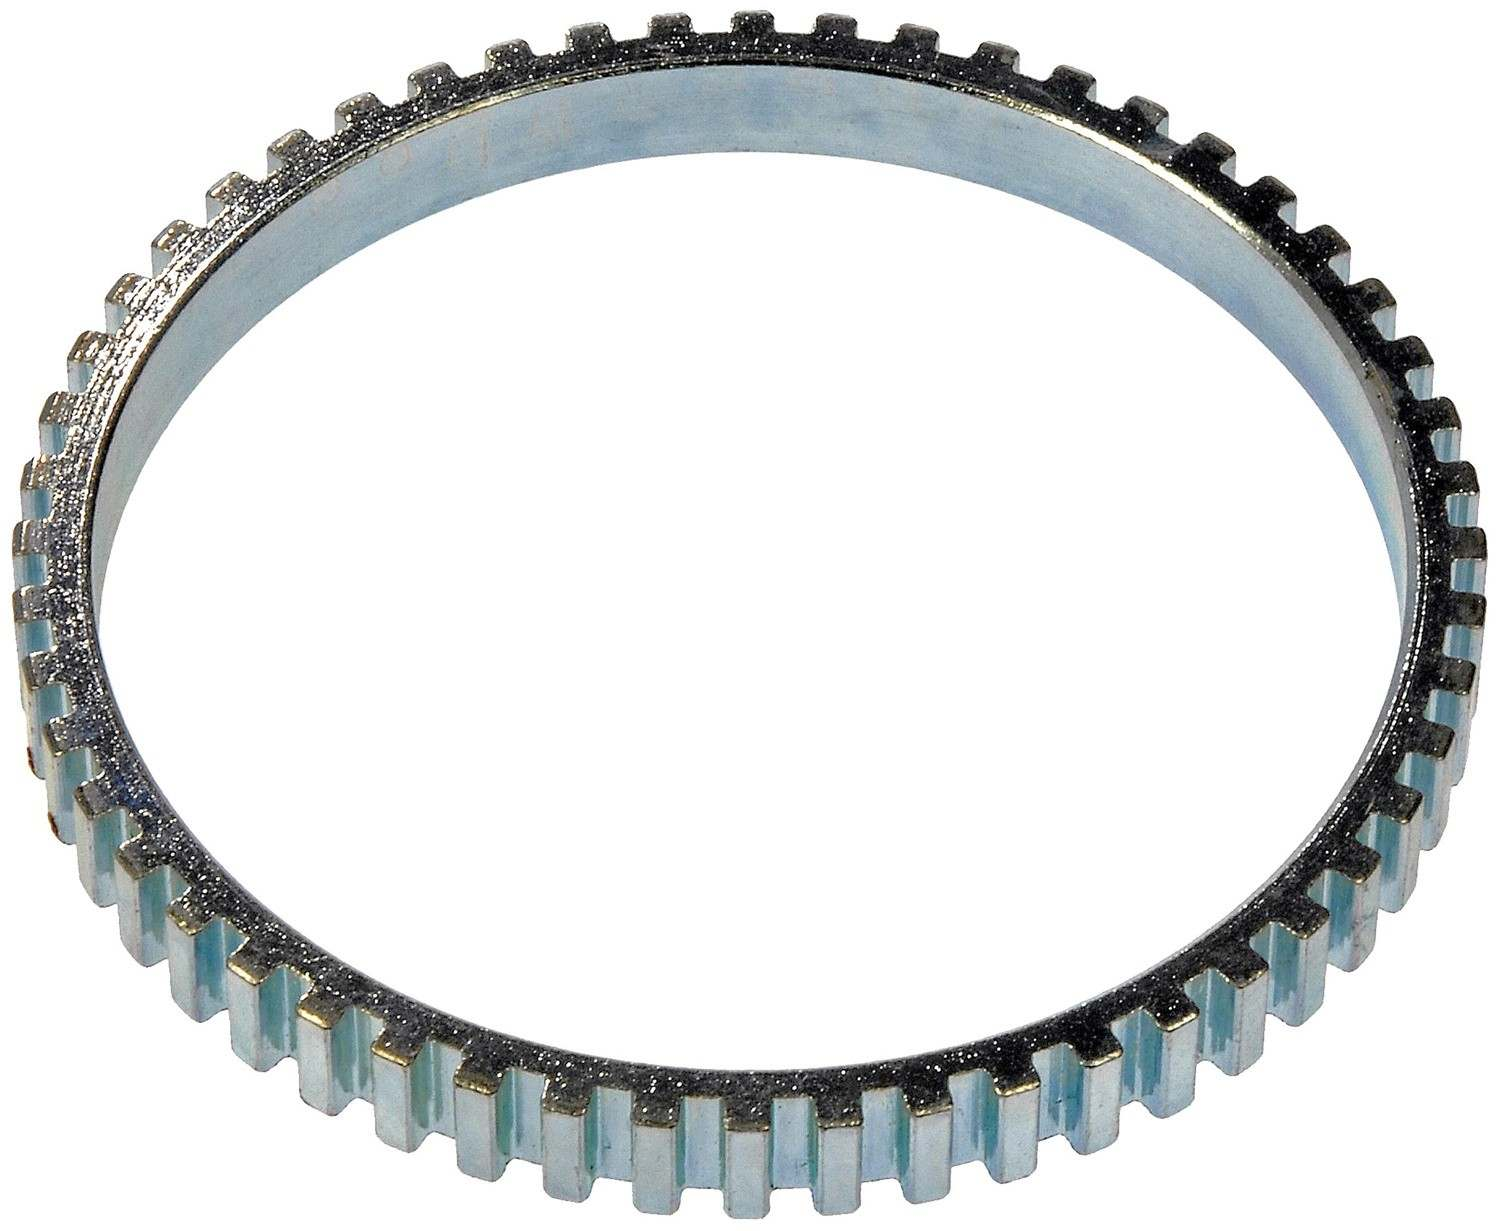 DORMAN OE SOLUTIONS - ABS Ring - DRE 917-543